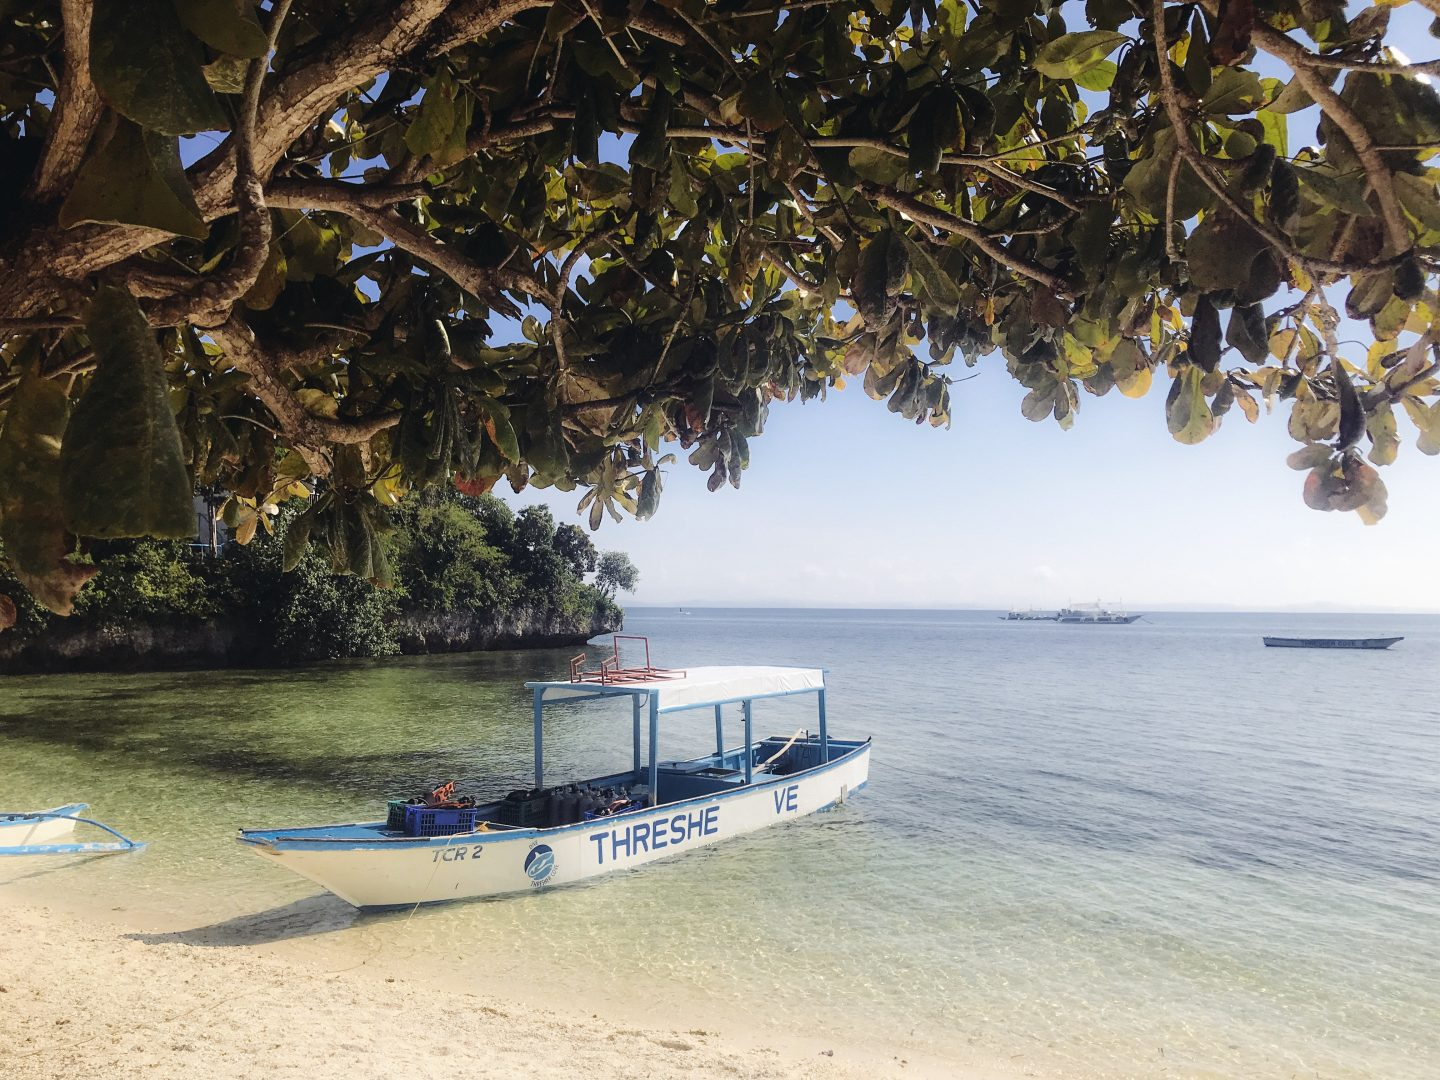 The small dive boat on the private beach in Malapascua